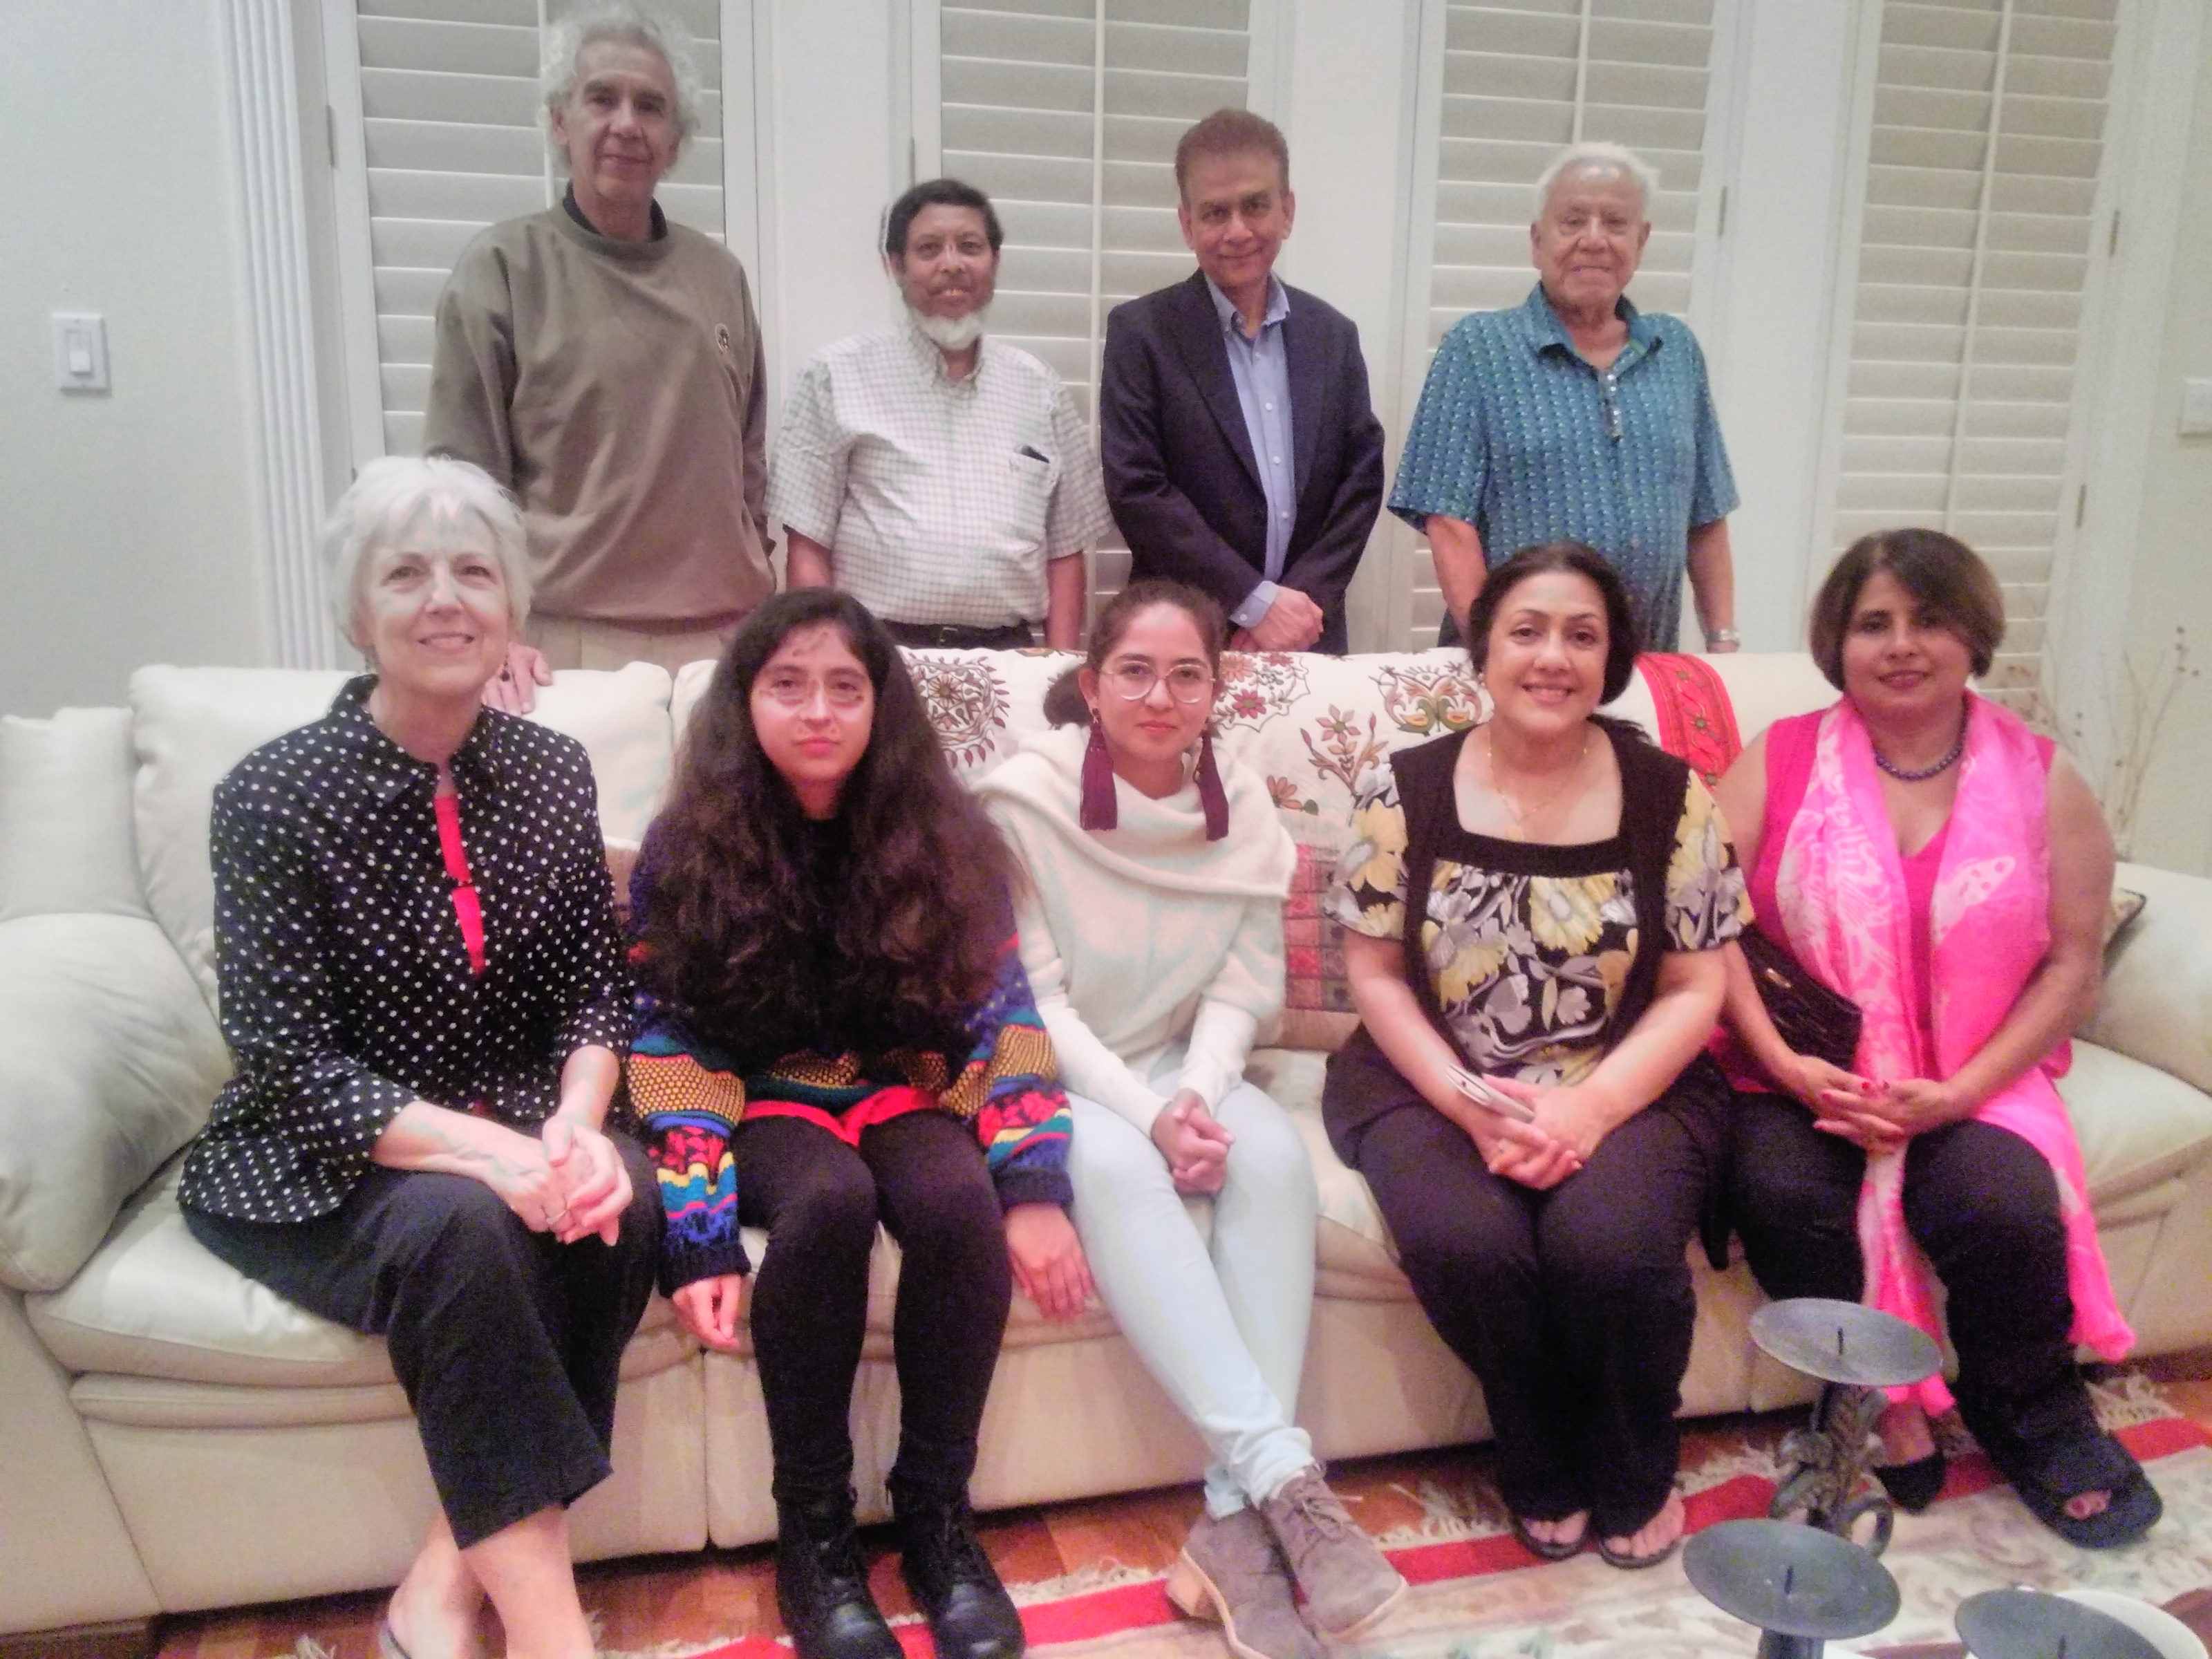 A special dinner was held at Prof. Edwan Mahid's residence in New Orleans. Top row from left: Prof. Zubieta-Calleja, Prof. Edwan Mahid, Daniel from Bangladesh. Prof. Rafael Rubio, Seated from left: Cherry Rubio, Rafaela Zubieta, Dr. Natalia Zubieta DeUrioste, NIna Mahid, Mrs. Daniel